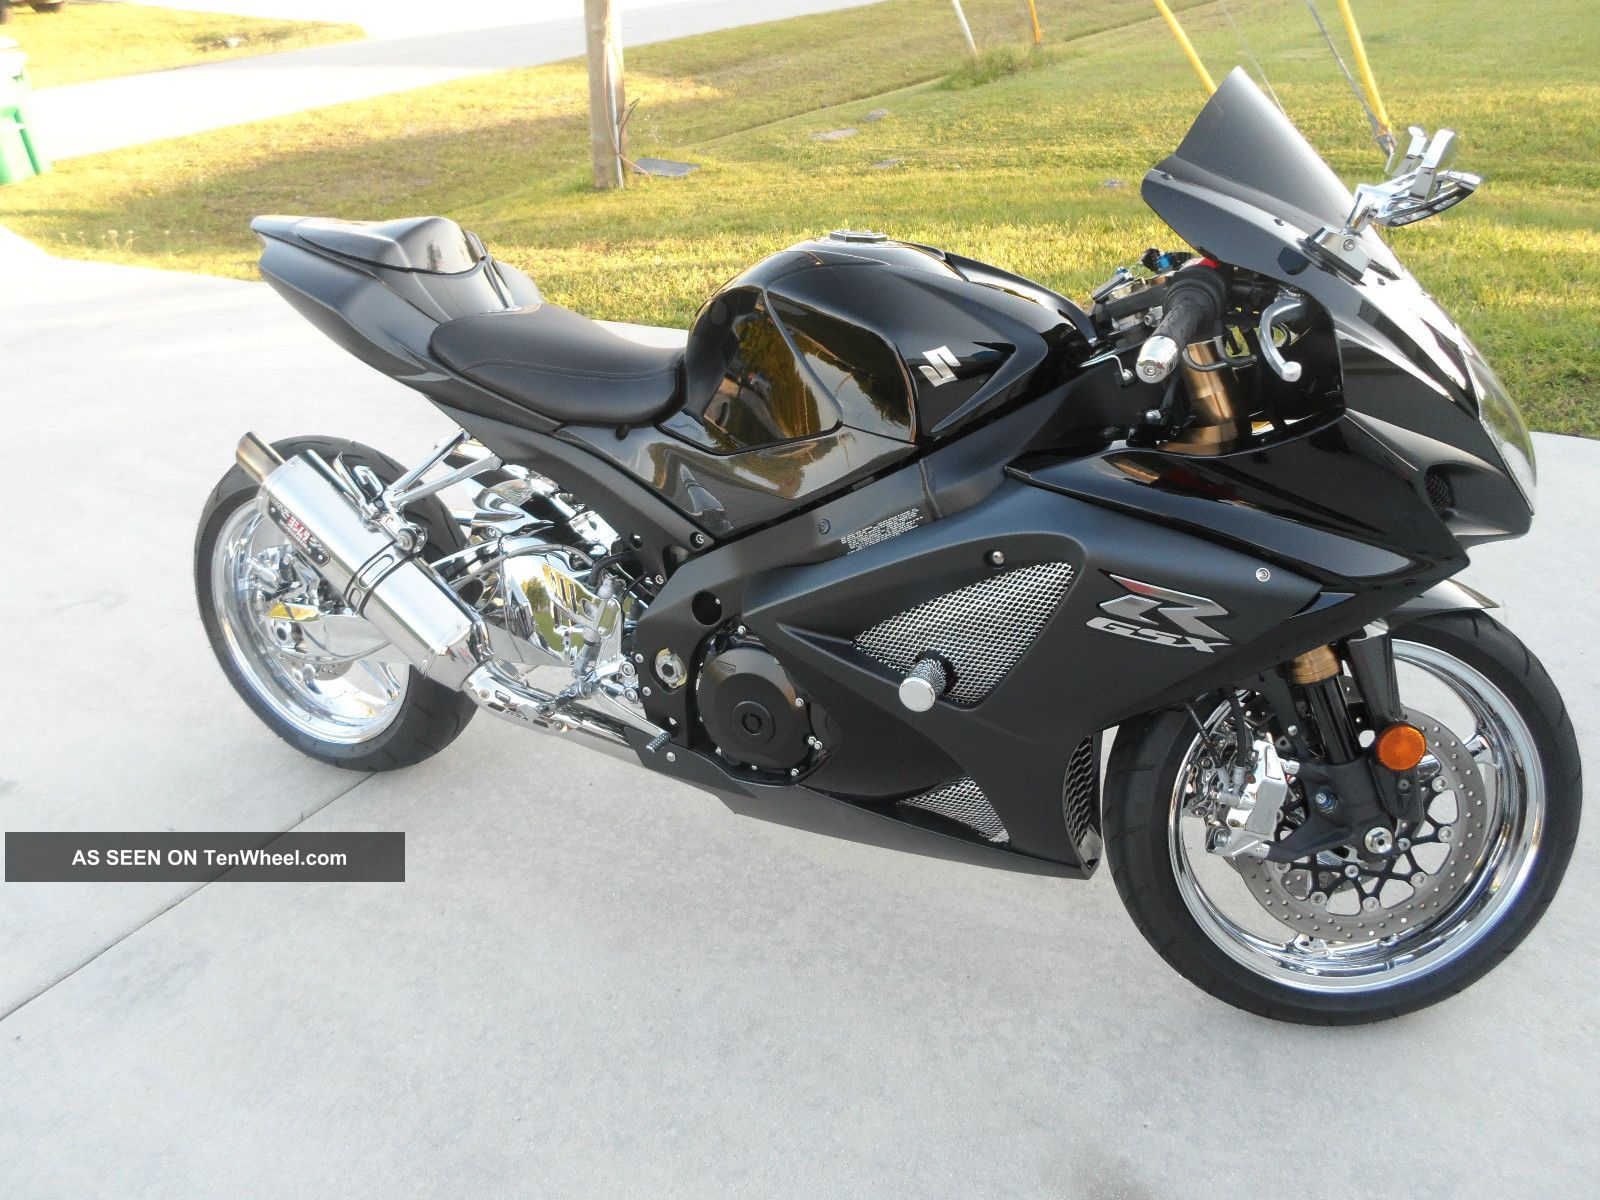 2008 suzuki gsx r 1000. Black Bedroom Furniture Sets. Home Design Ideas